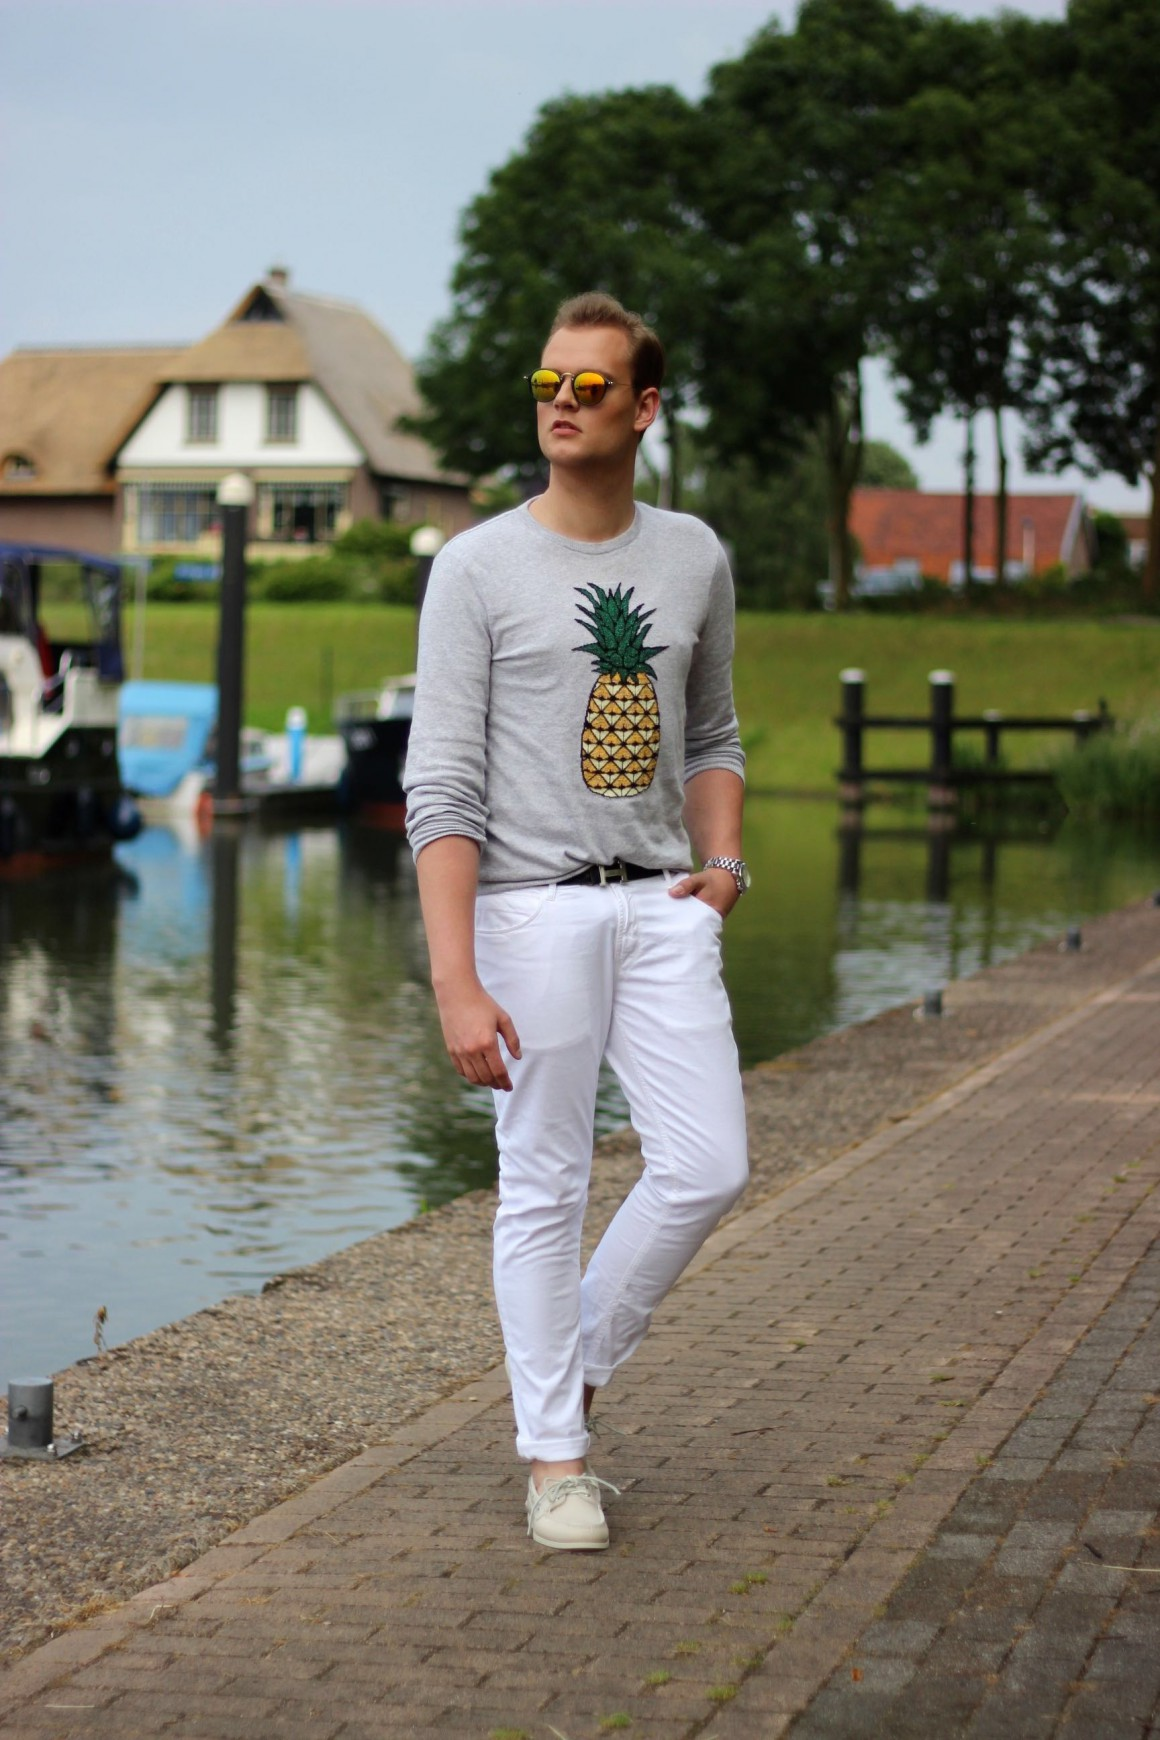 Pineapple sweater and boat shoes. Asos jumper, zara jeans, sperry boat shoes, JustKVN menswear and lifestyle blog